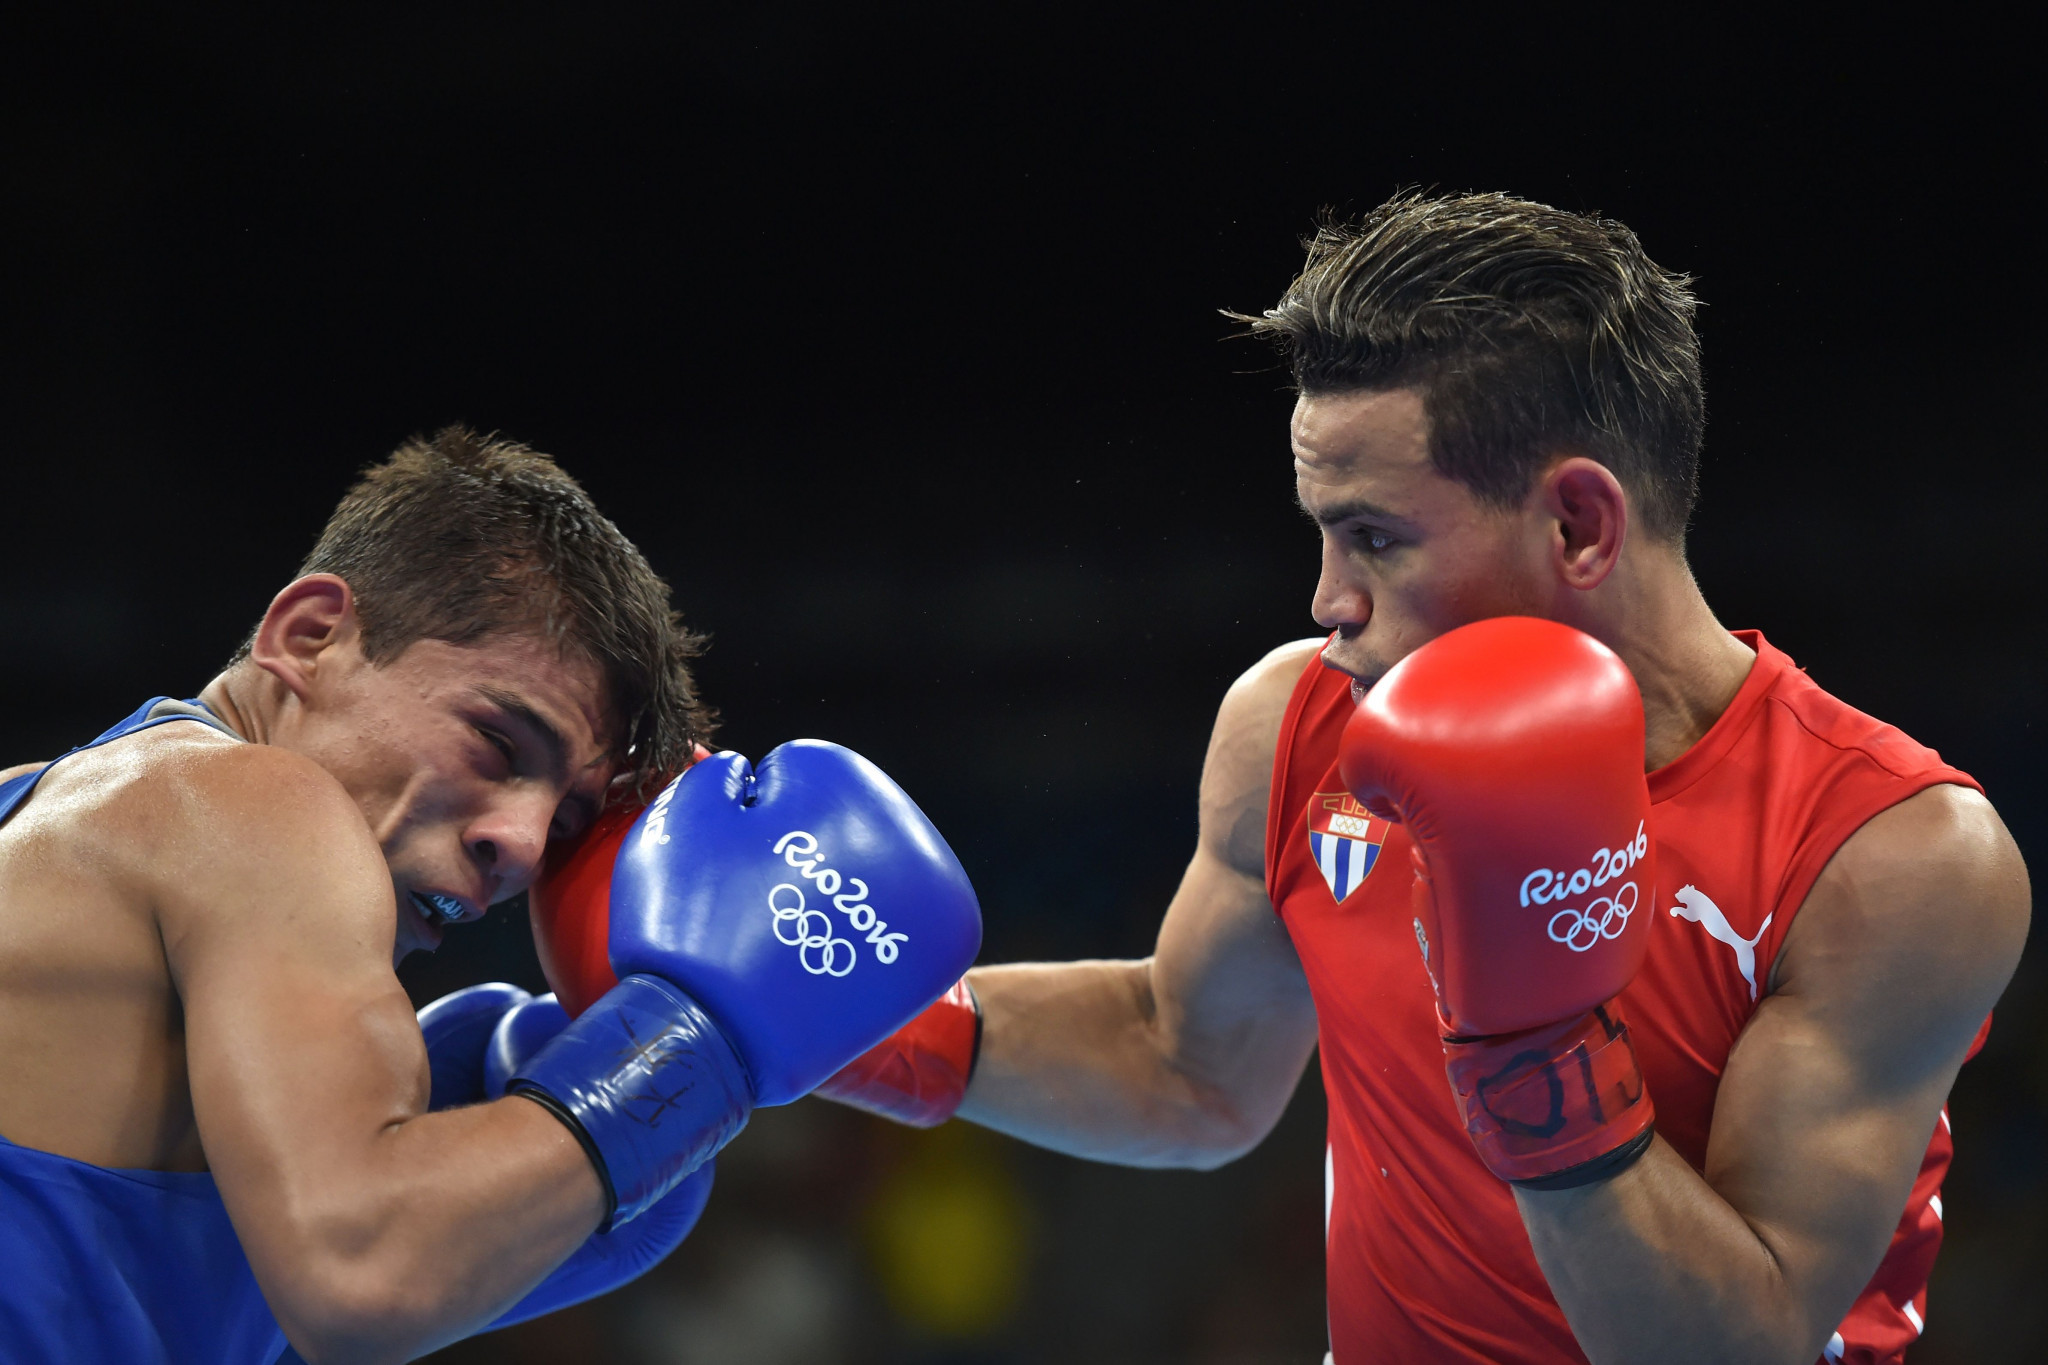 AIBA reject plan to exclude two men's categories at Tokyo 2020 to accommodate two more women's divisions